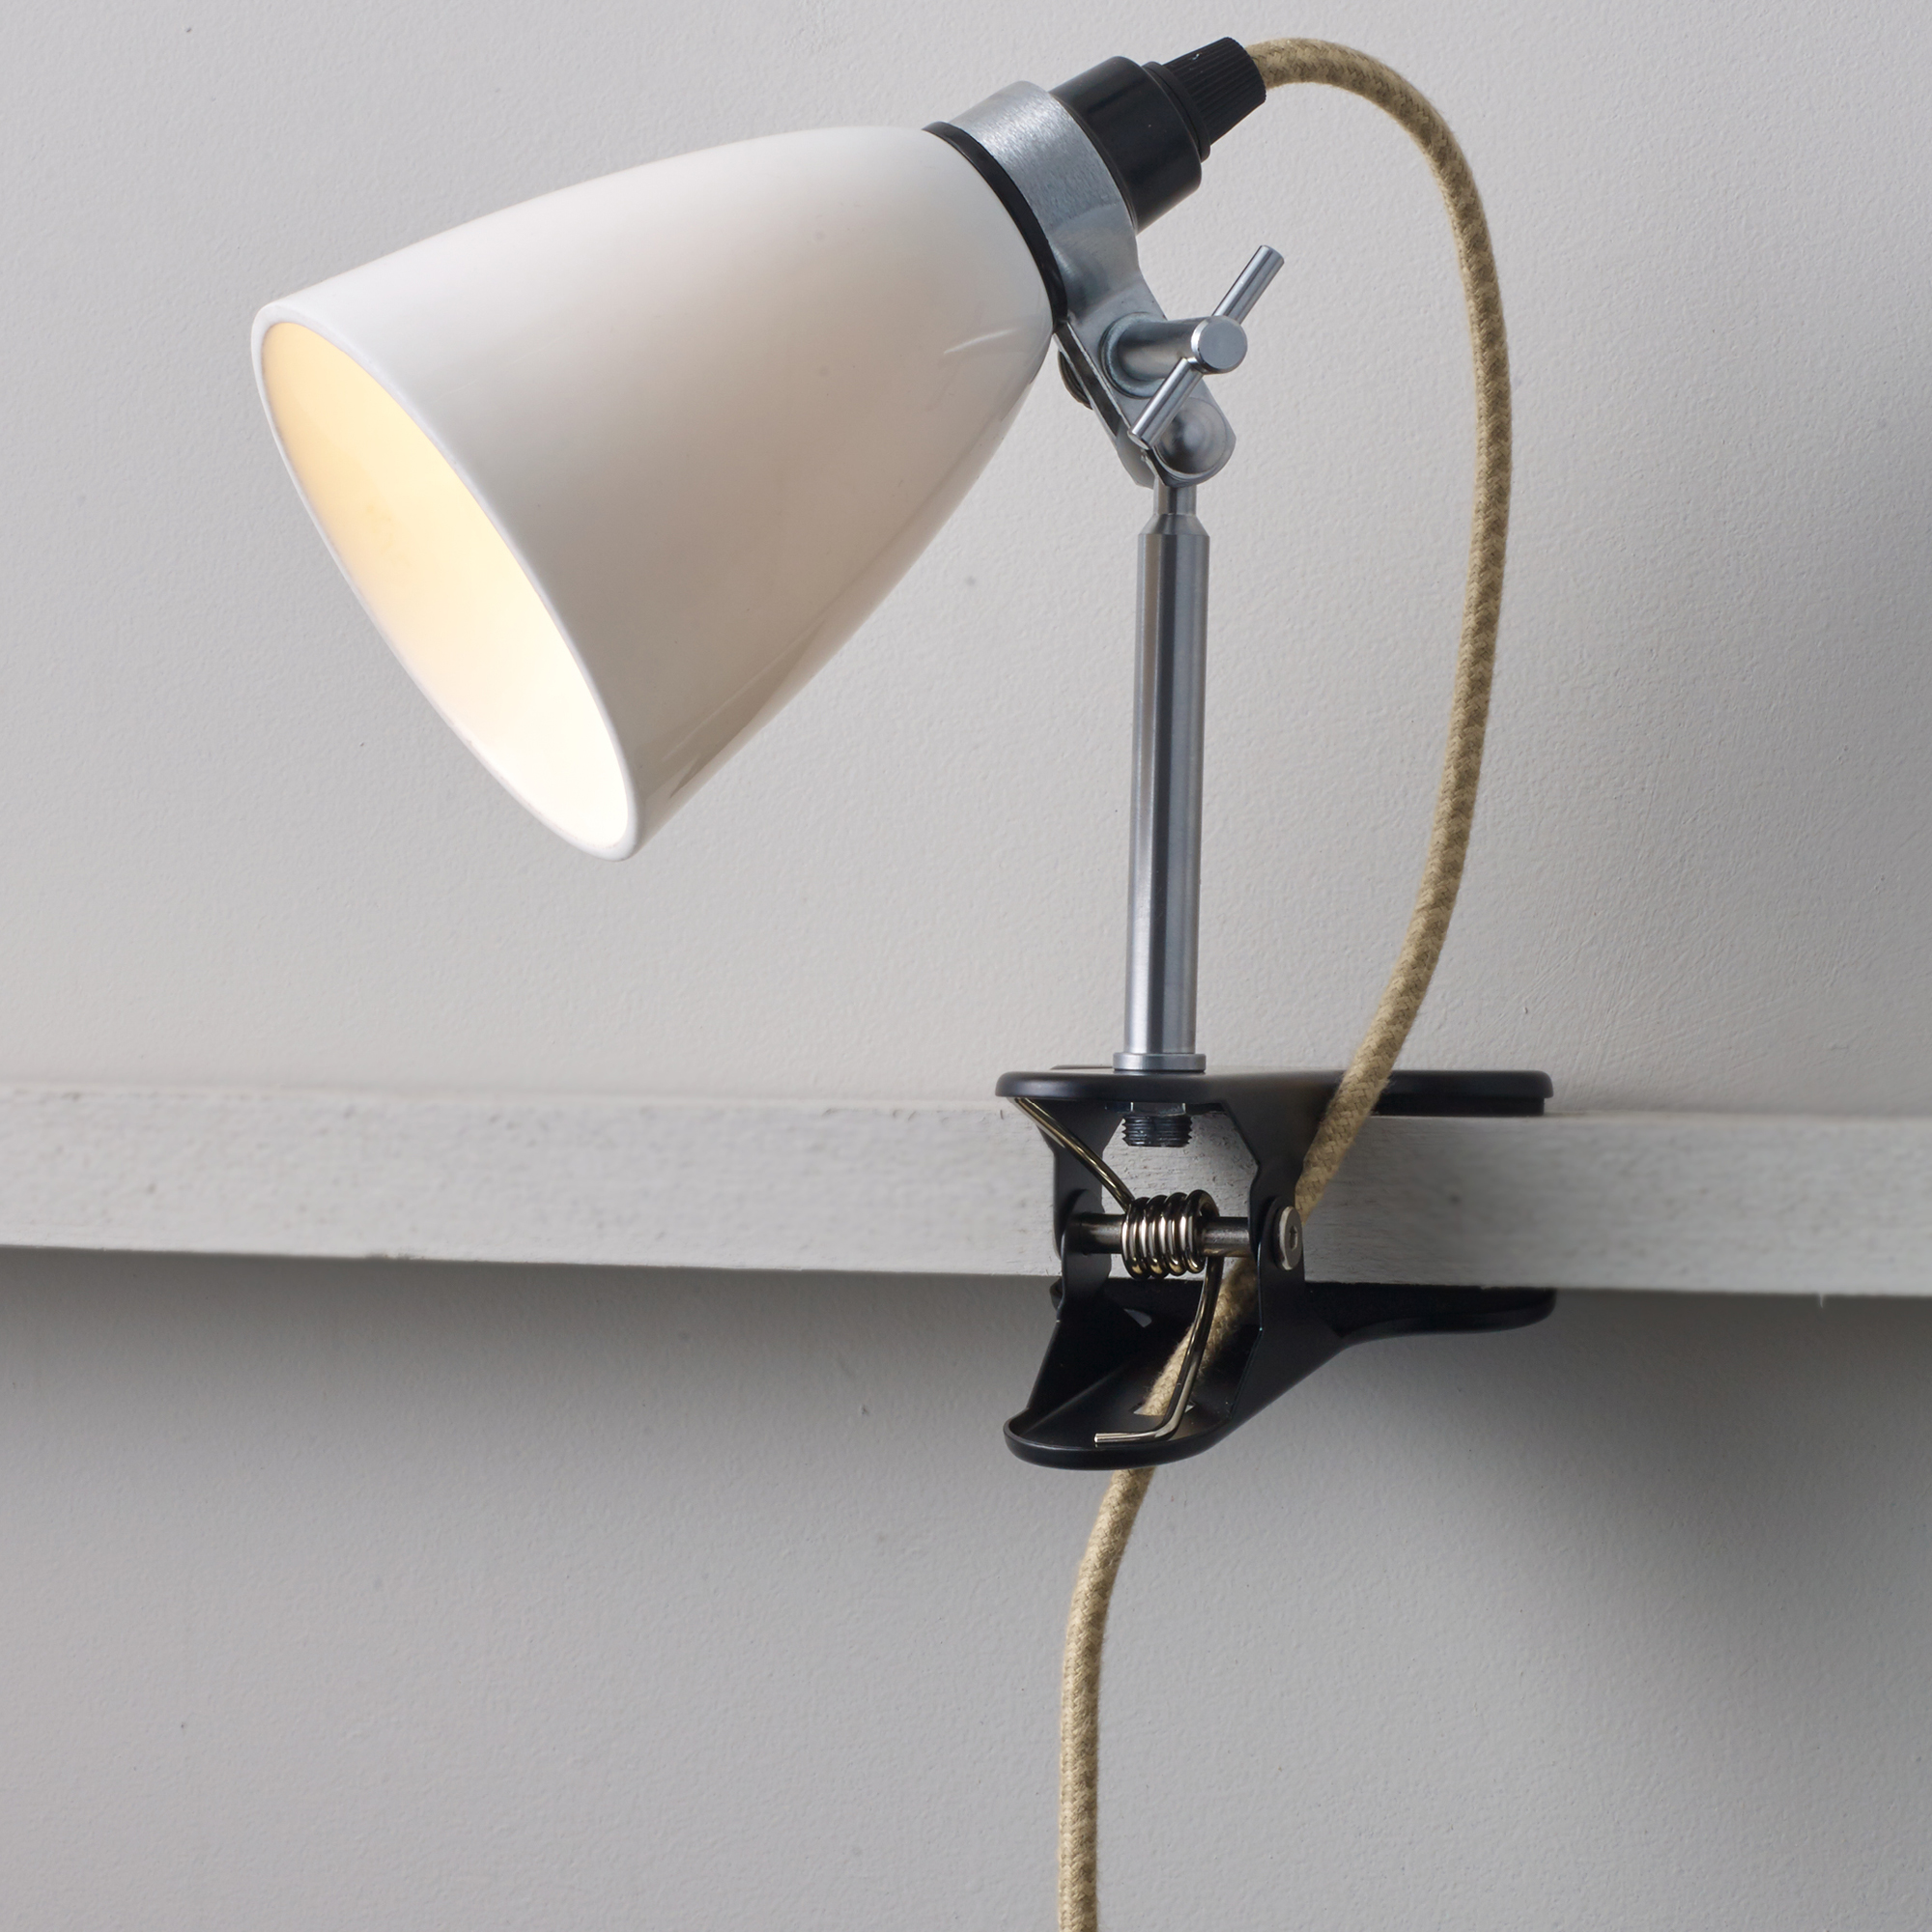 Hector dome clip table lamp by original btc bt fl344n aloadofball Image collections